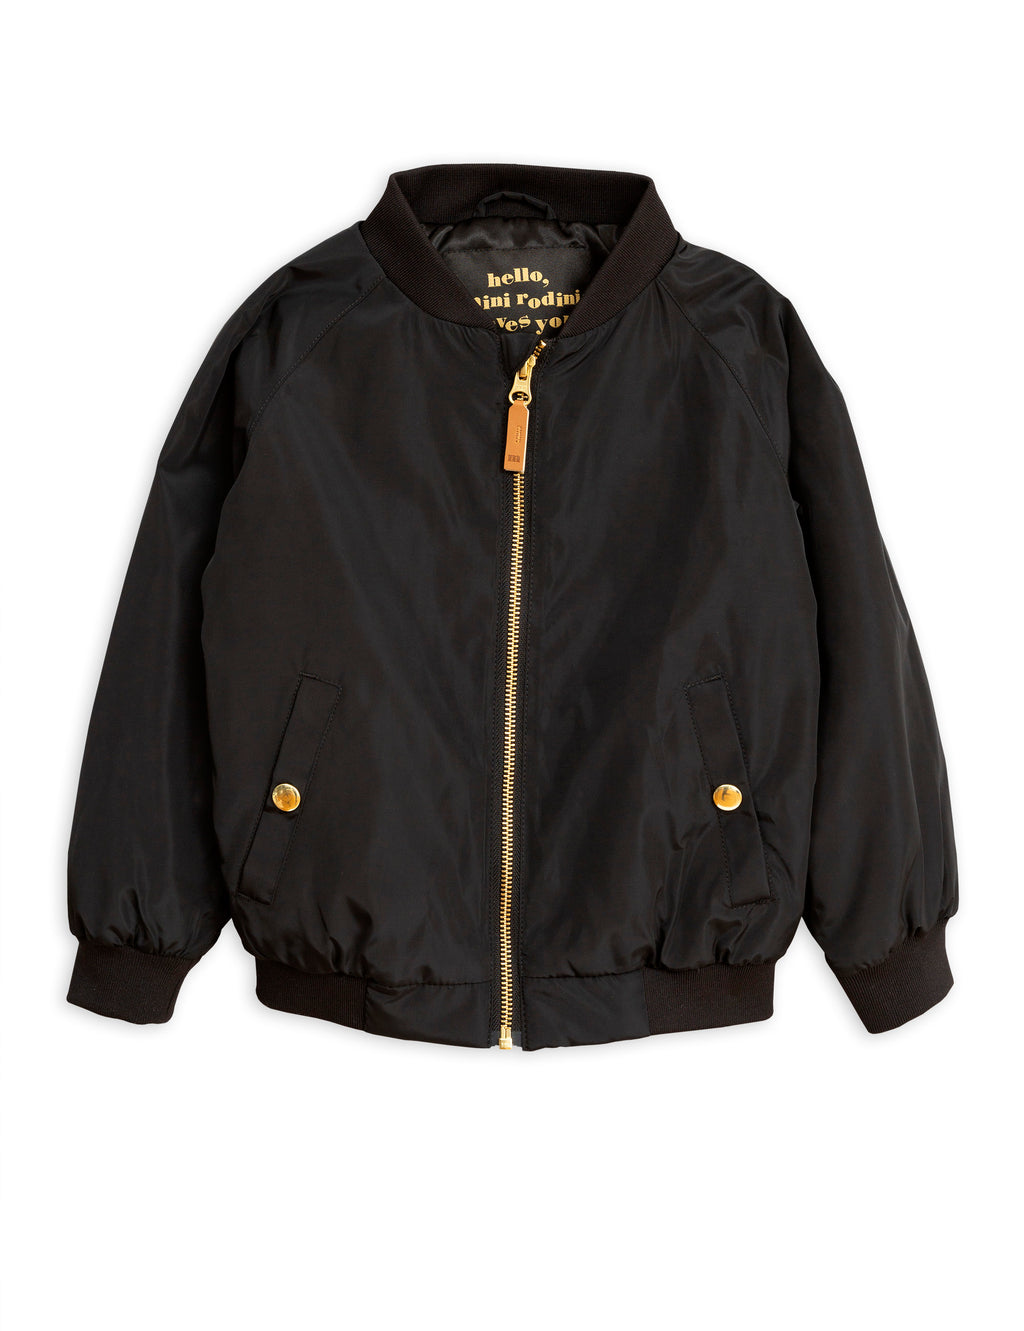 Mini Rodini Pegasus Baseball Jacket - Black